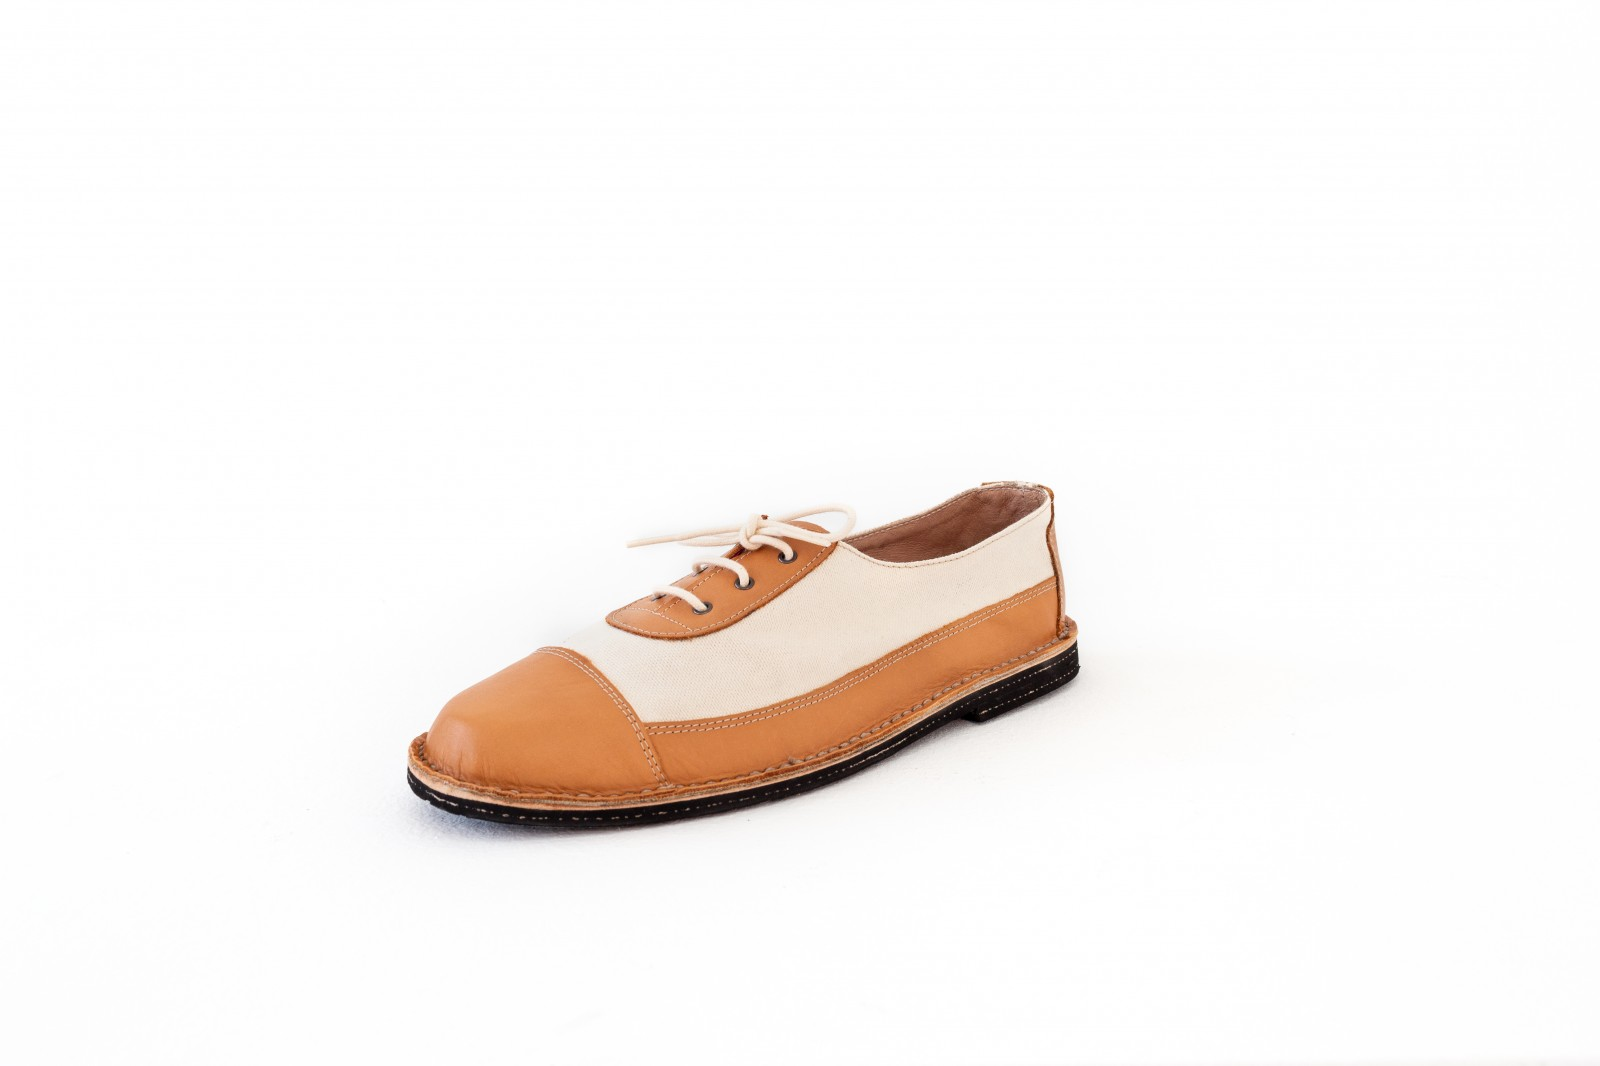 Mallorca porquera shoe for men - brown